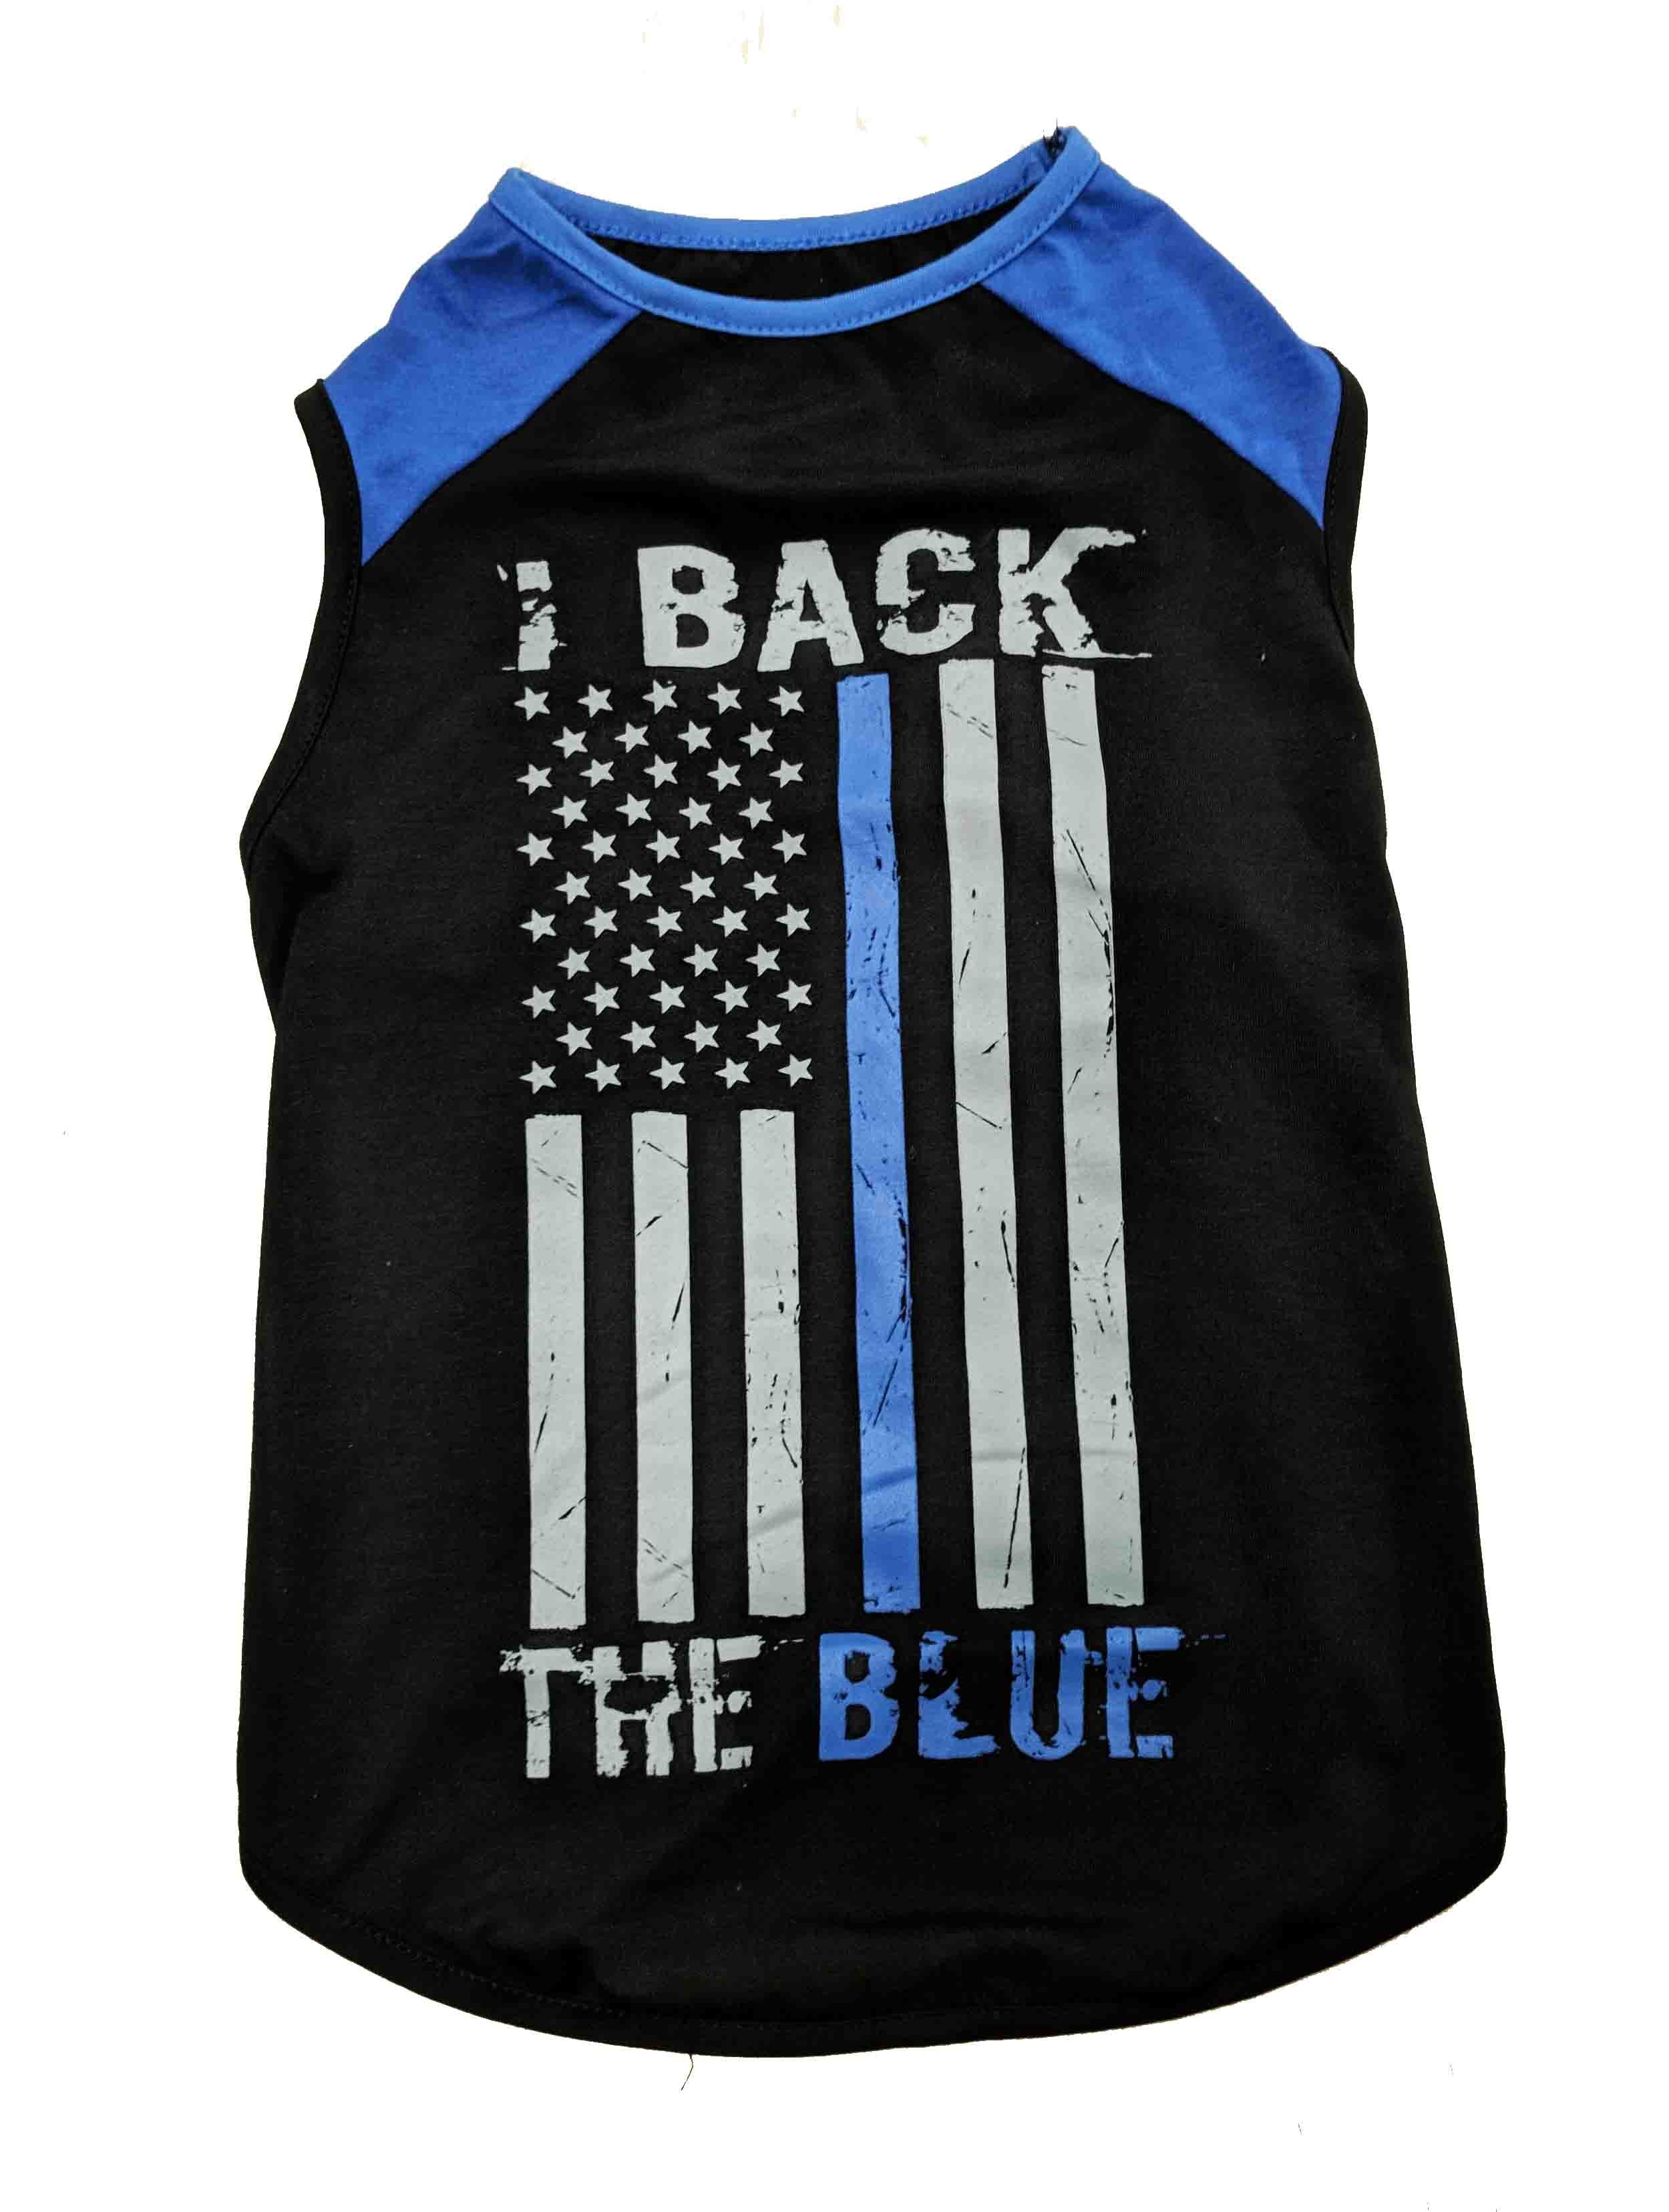 Thin Blue Line USA - Official Site - Shop Gifts, Flags